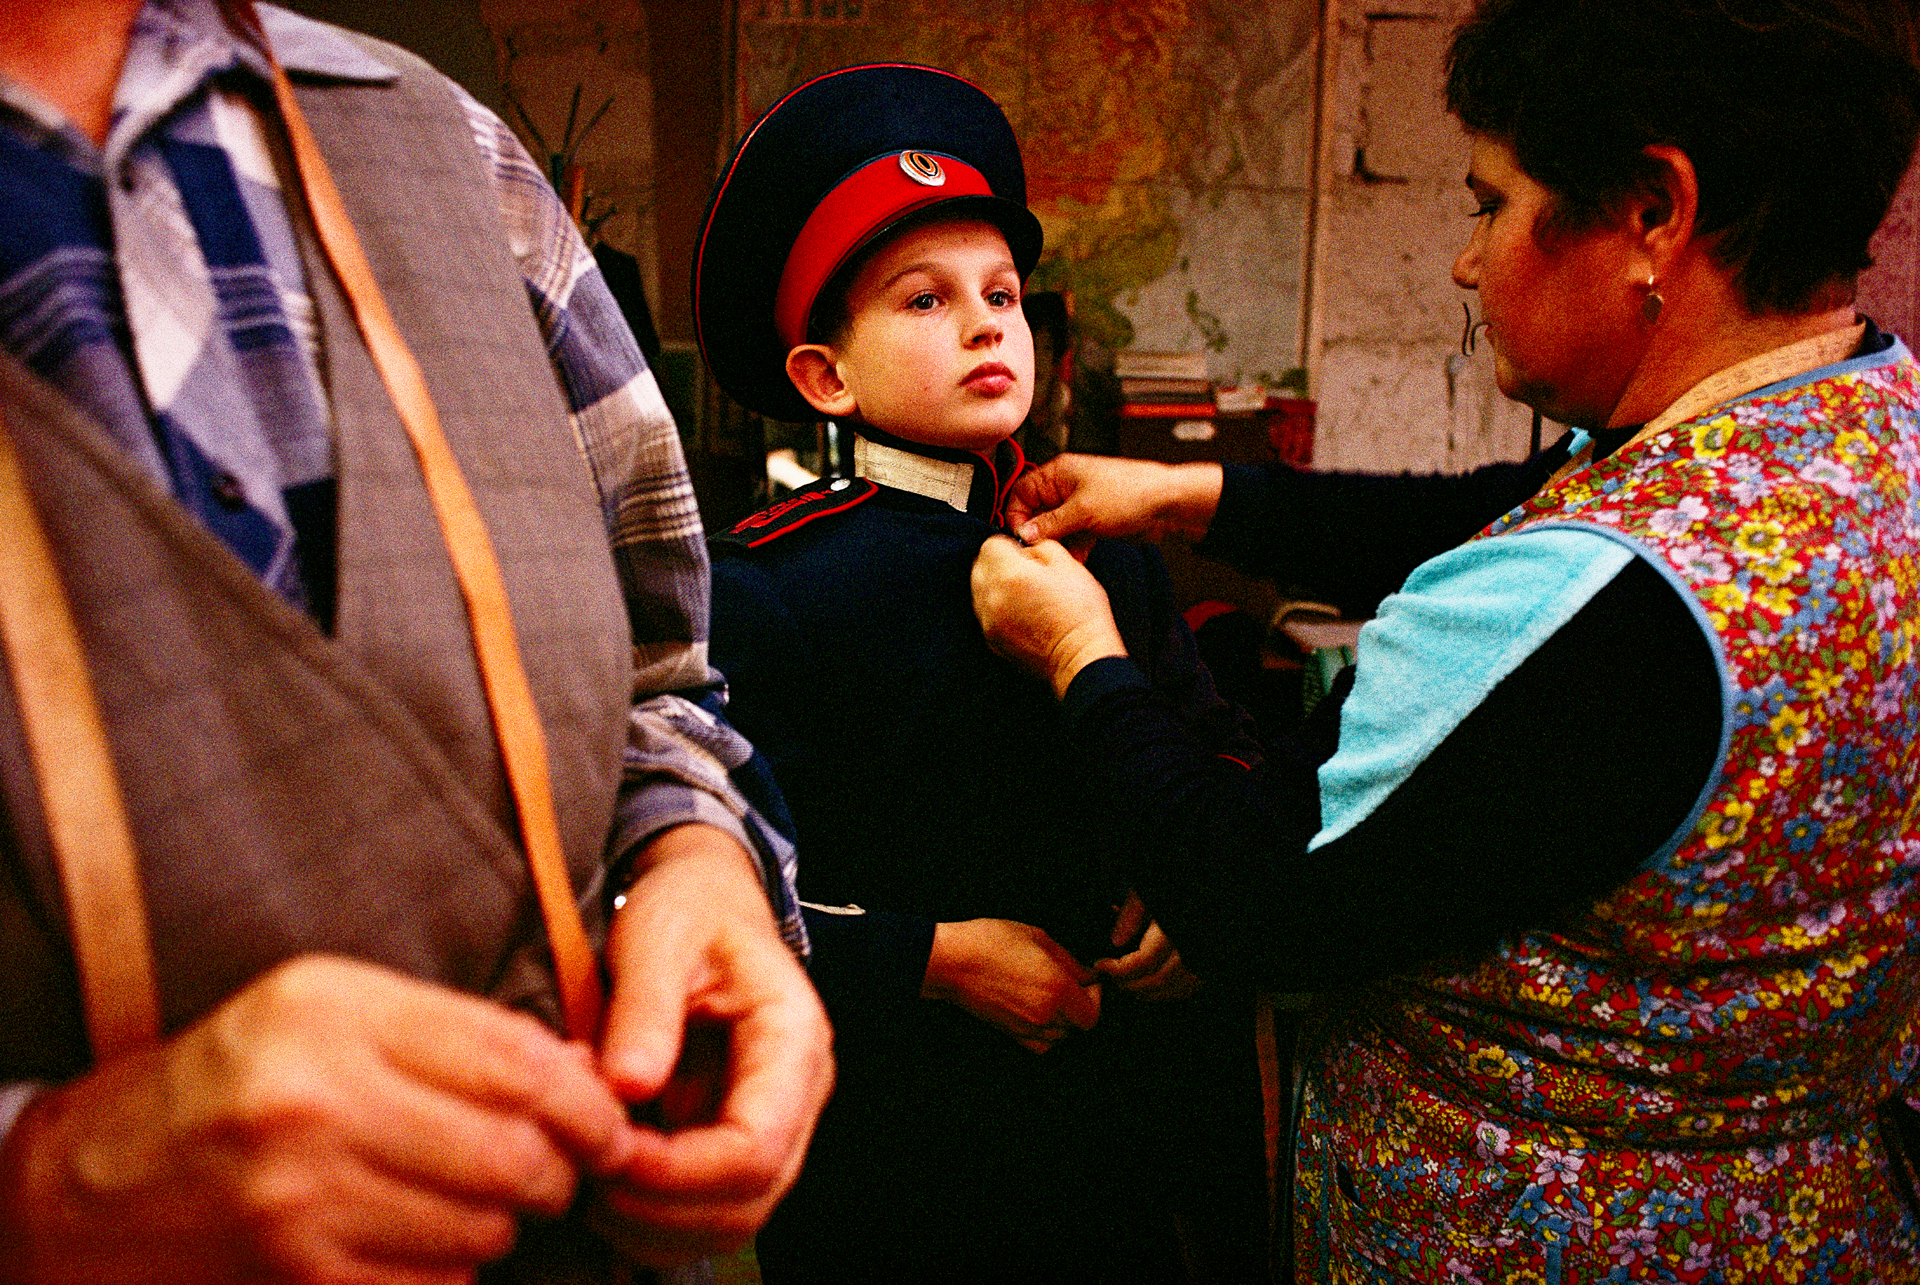 Following a proud tradition, a young soldier-to-be is fitted for his uniform at the Royal Cossack Cadet Academy. Established in 1883, closed by Stalin in 1933, the academy reopened its doors in 1991.  Novocherkassk, Russia